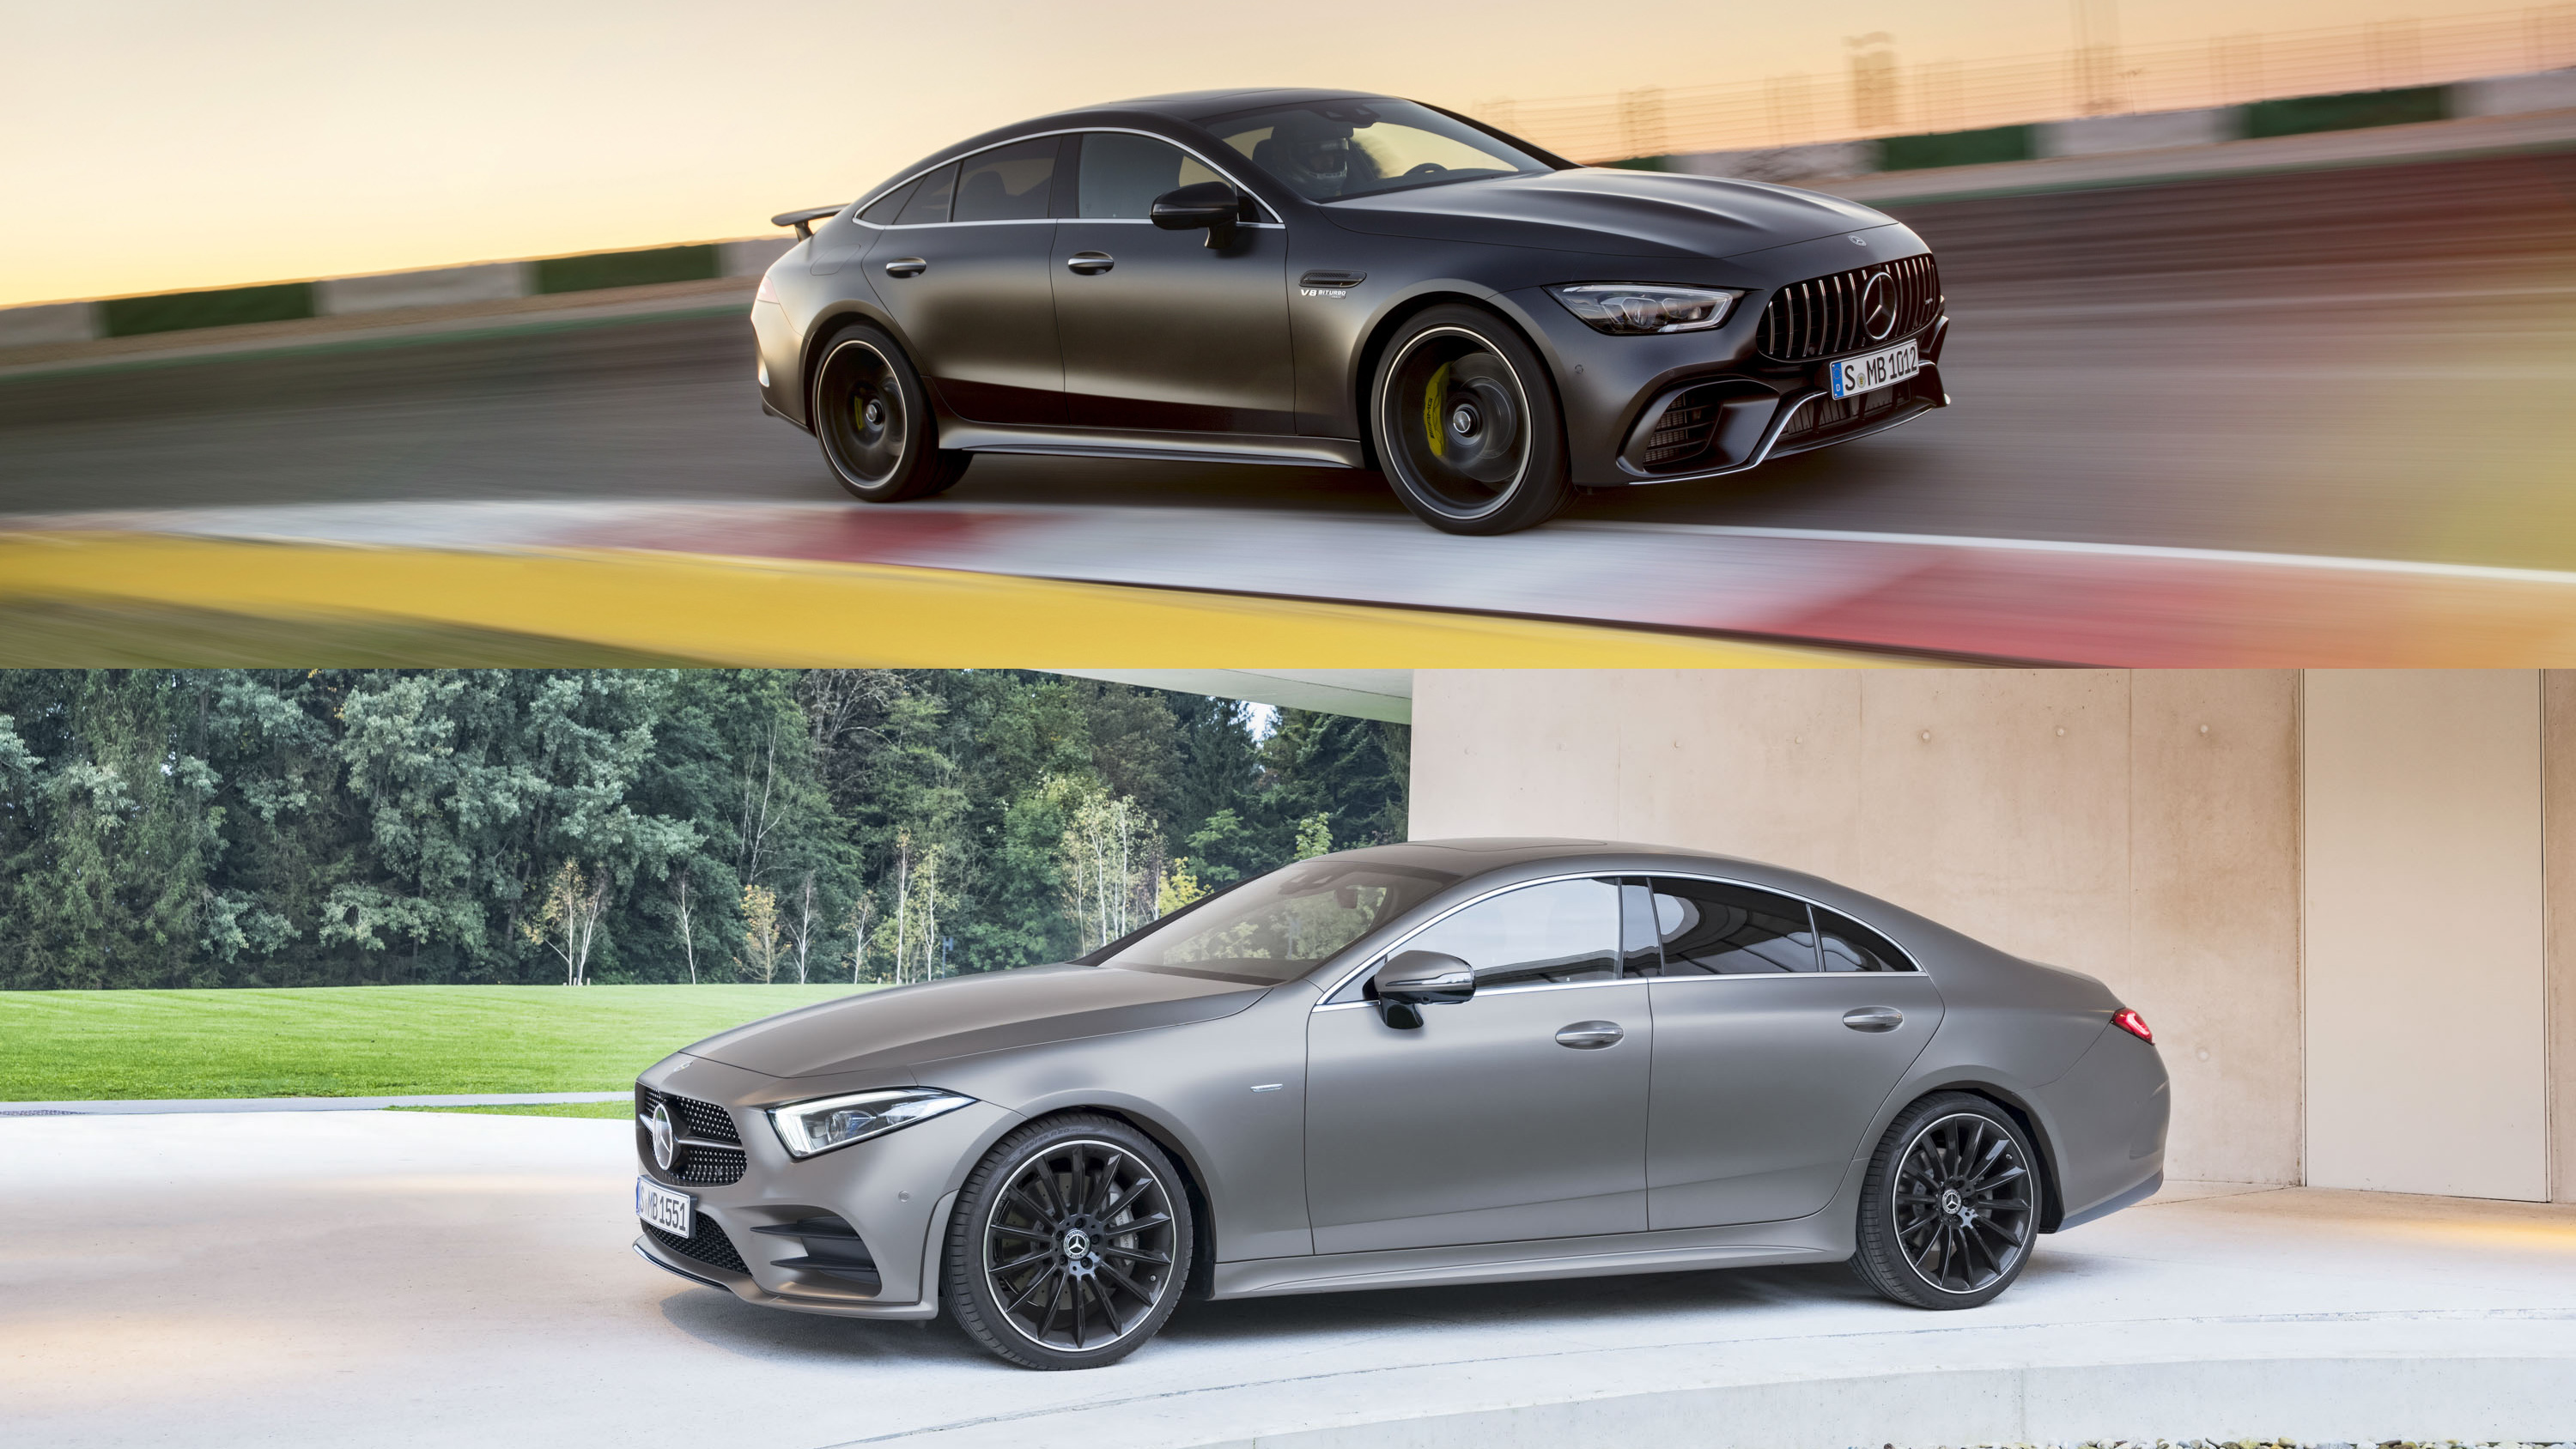 mercedes amg gt 4 door coupe vs mercedes cls here s what sets them apart